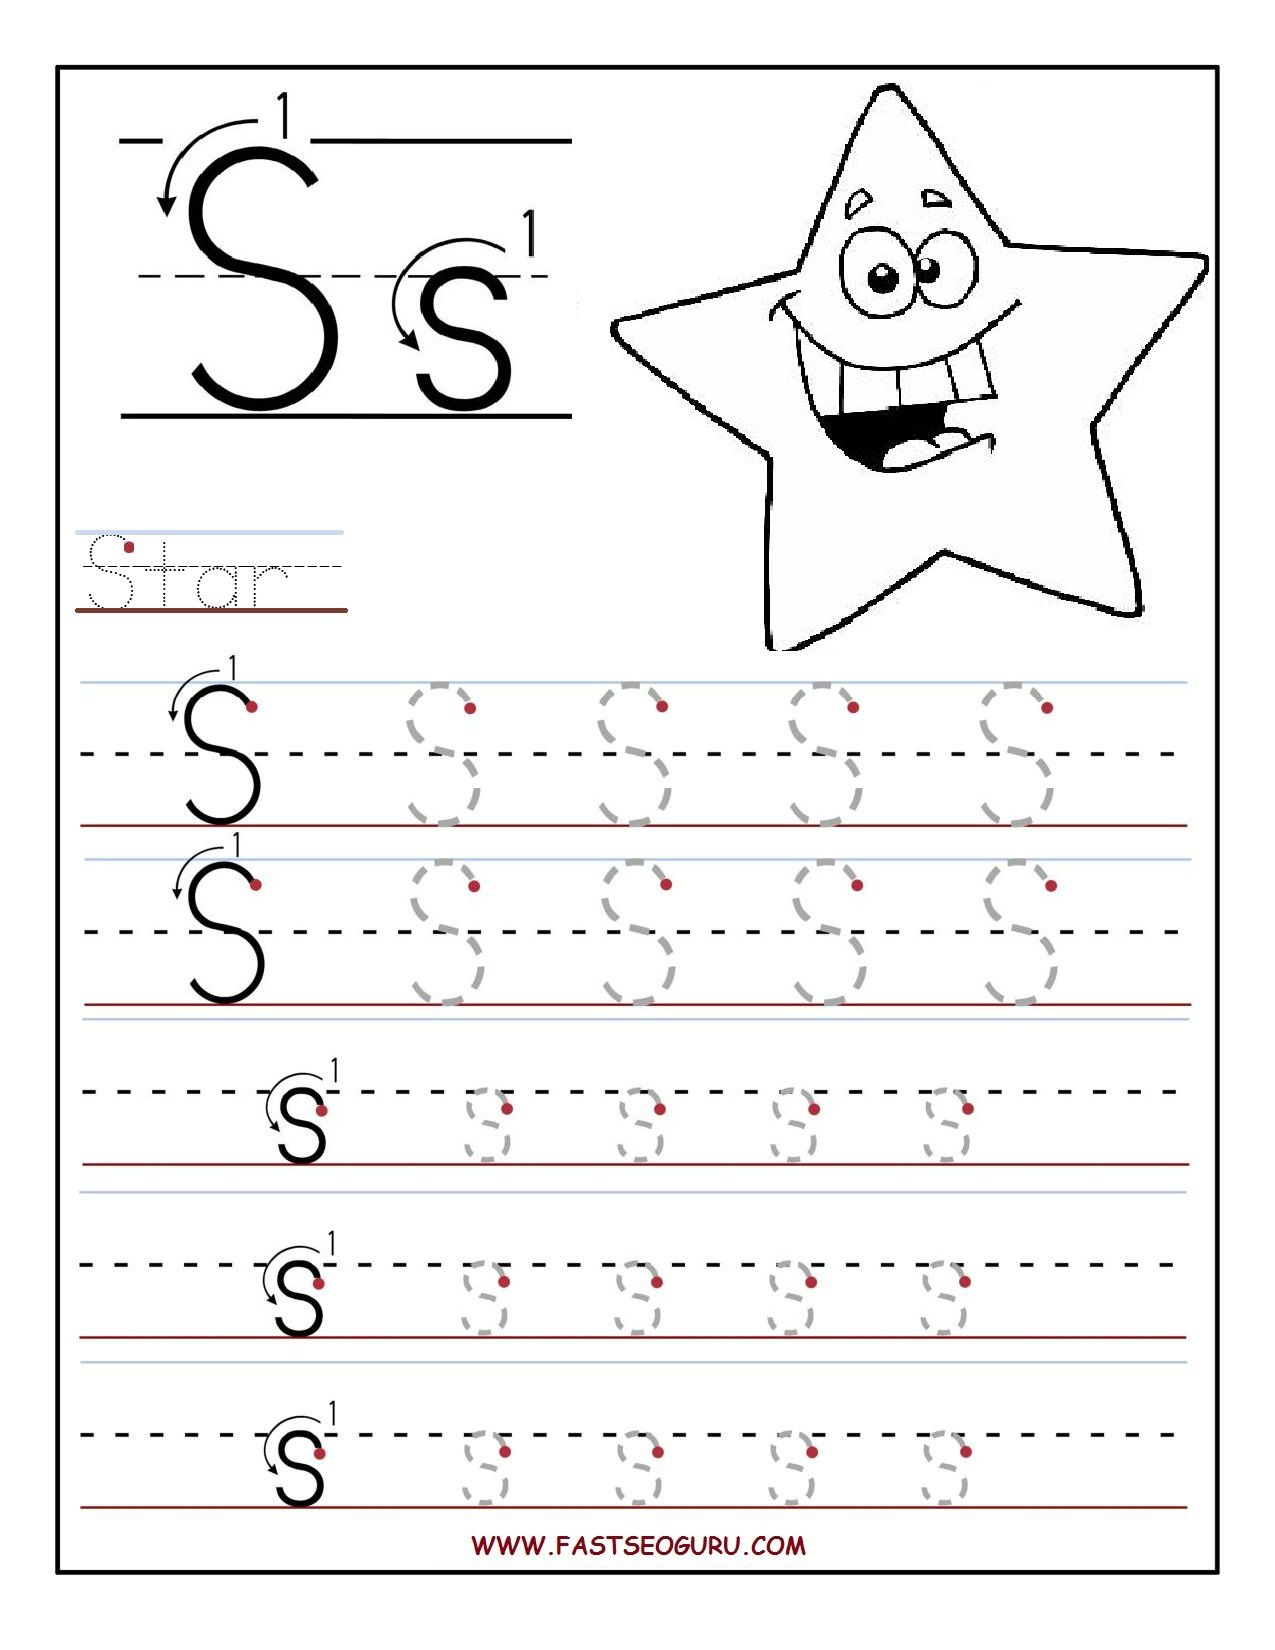 Printable Cursive Alphabet Worksheets Abitlikethis with Tracing Letter S Worksheets